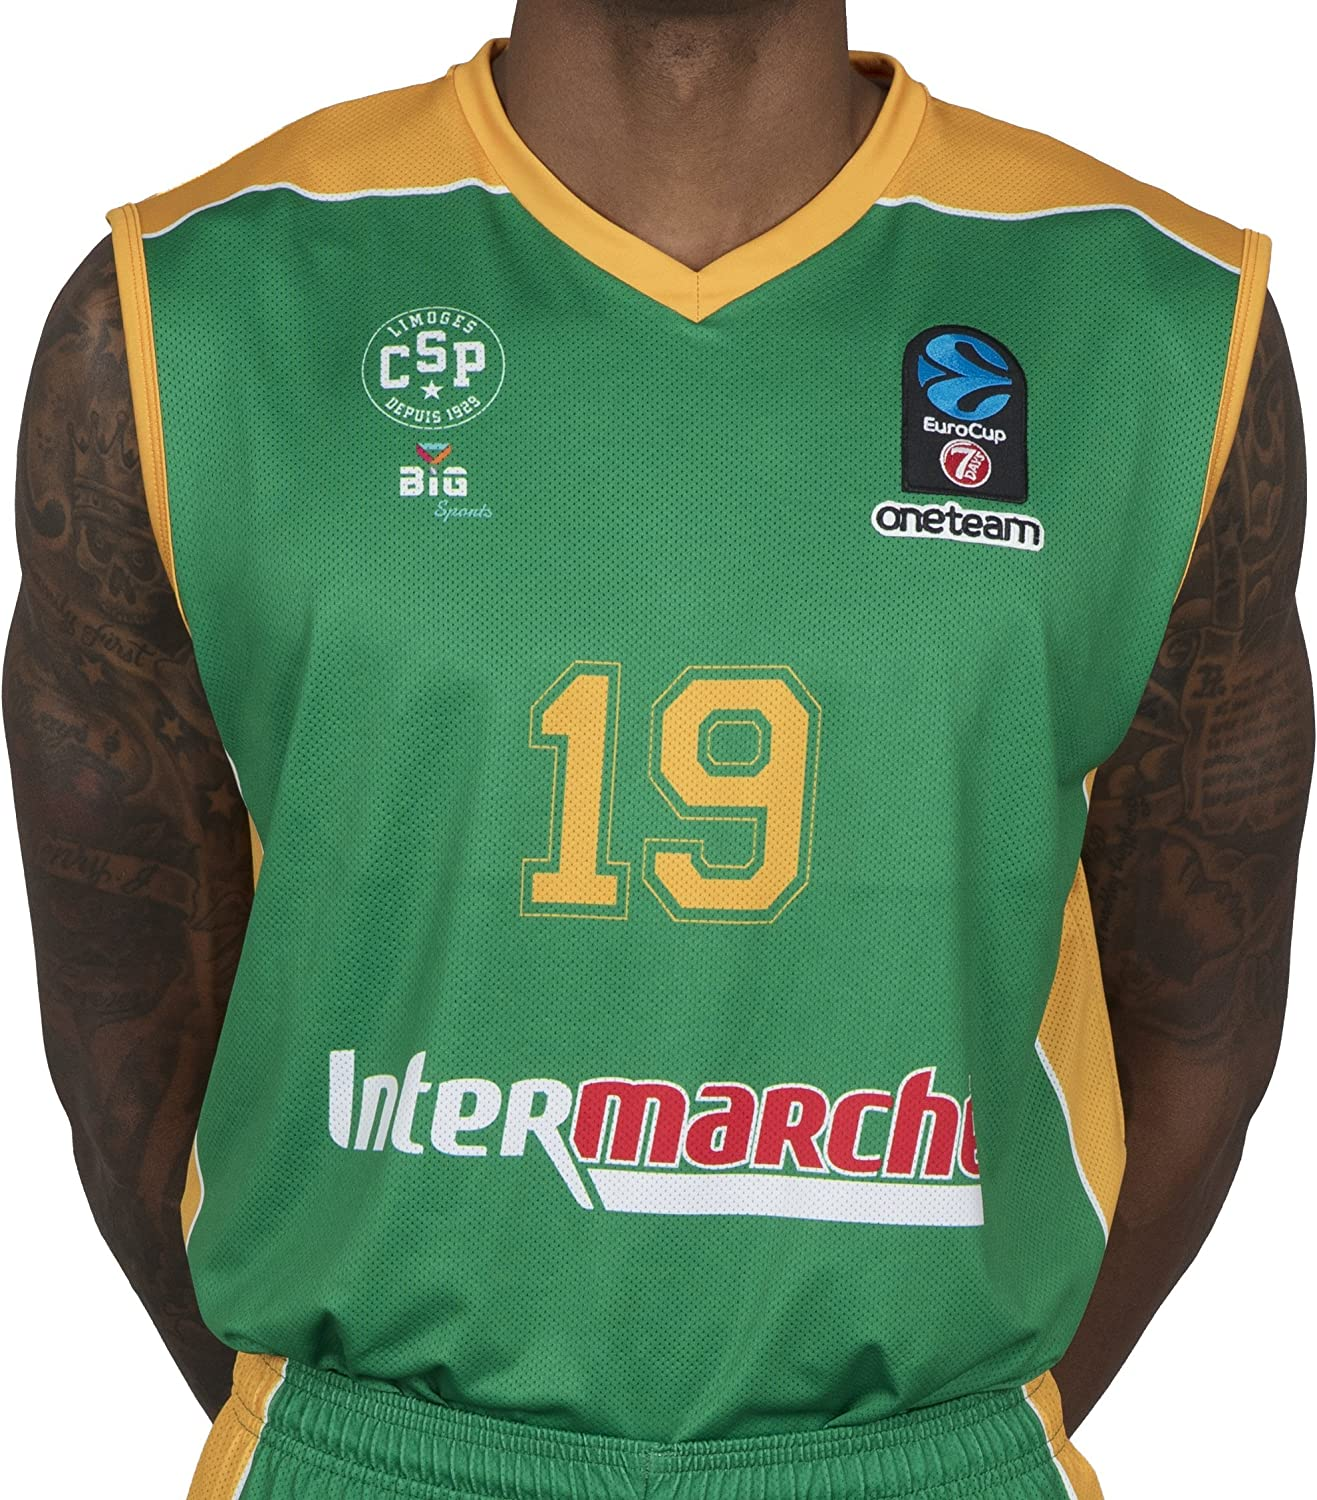 BIGSPORTS Replica Eurocup Limoges Csp Hayes 19 2017 2018 Maillot de Basketball Homme